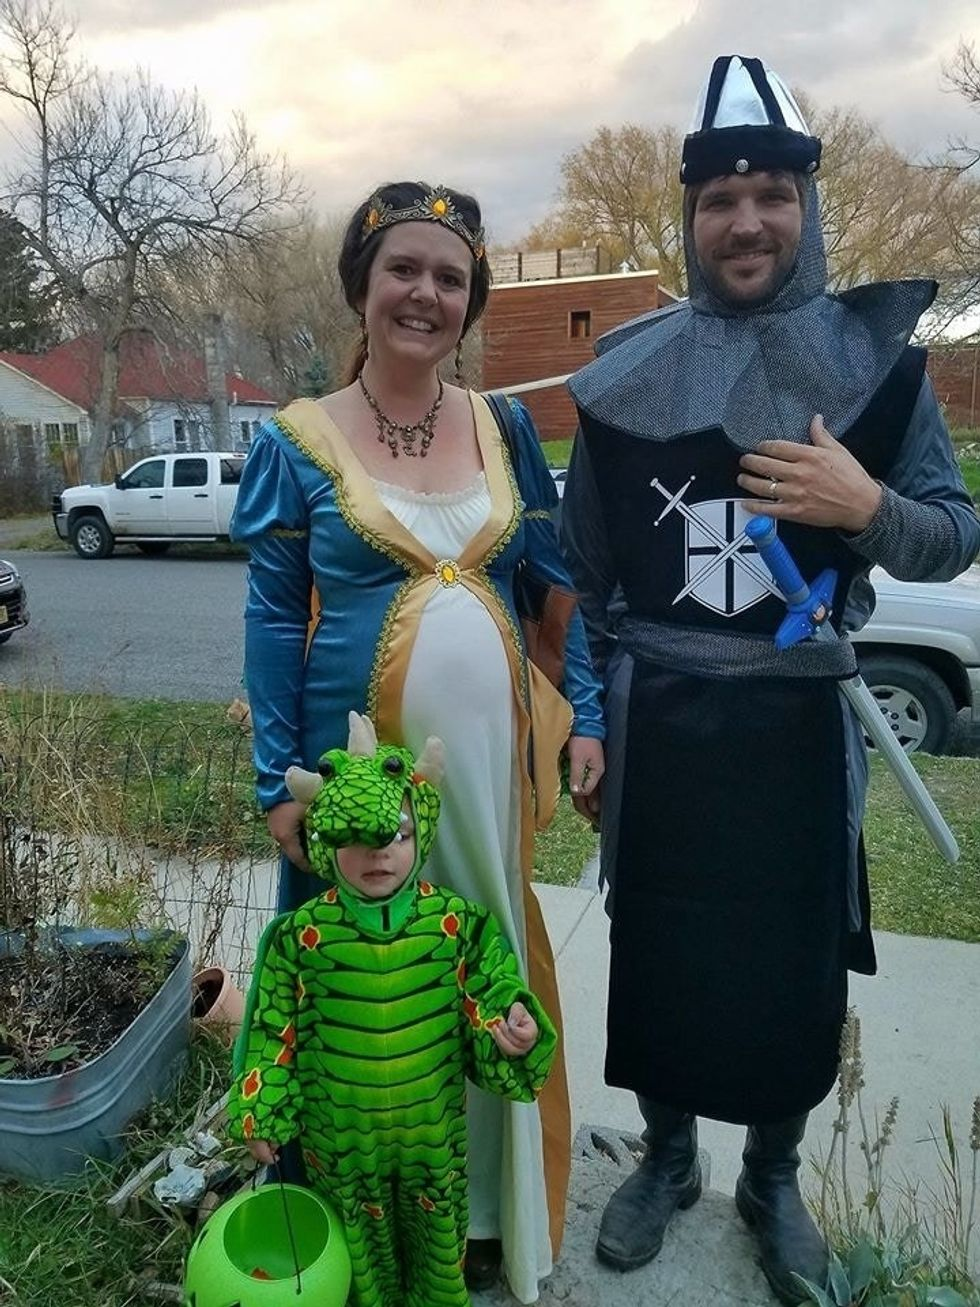 4 Person Halloween Costumes Girls.40 Family Halloween Costume Ideas Everyone Will Love Motherly